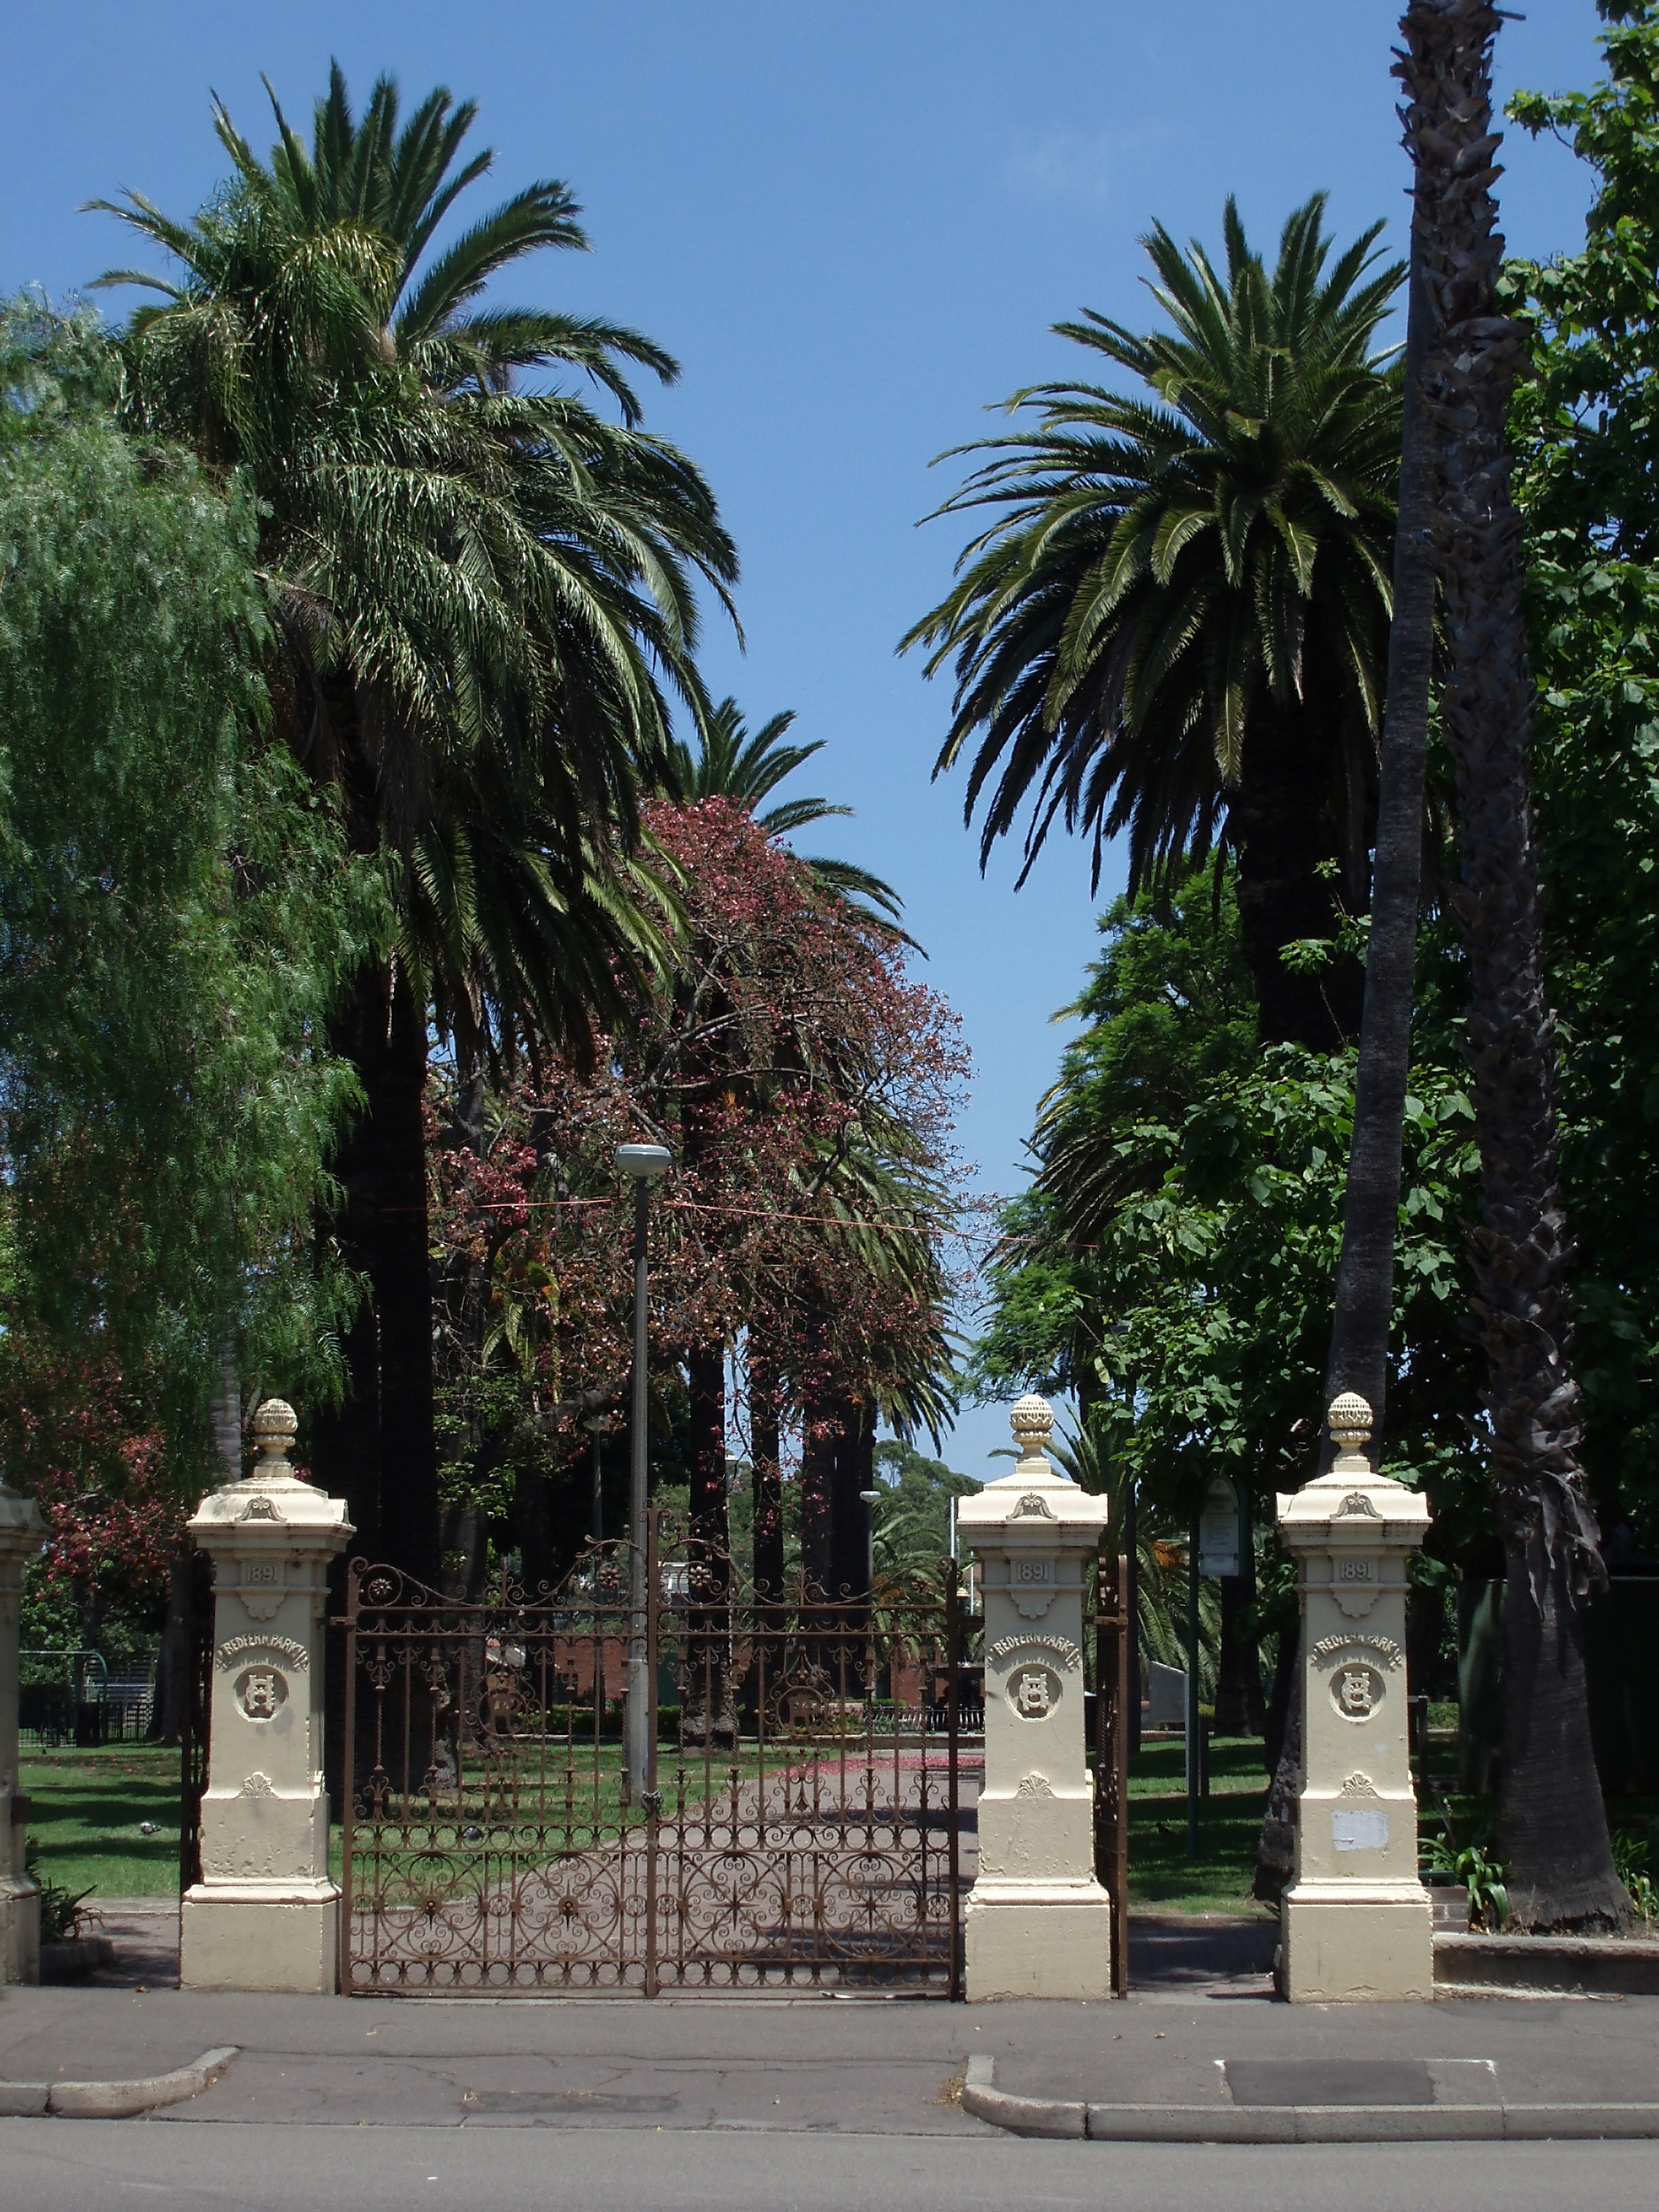 historic gates at the entrance to redfern park, sydney